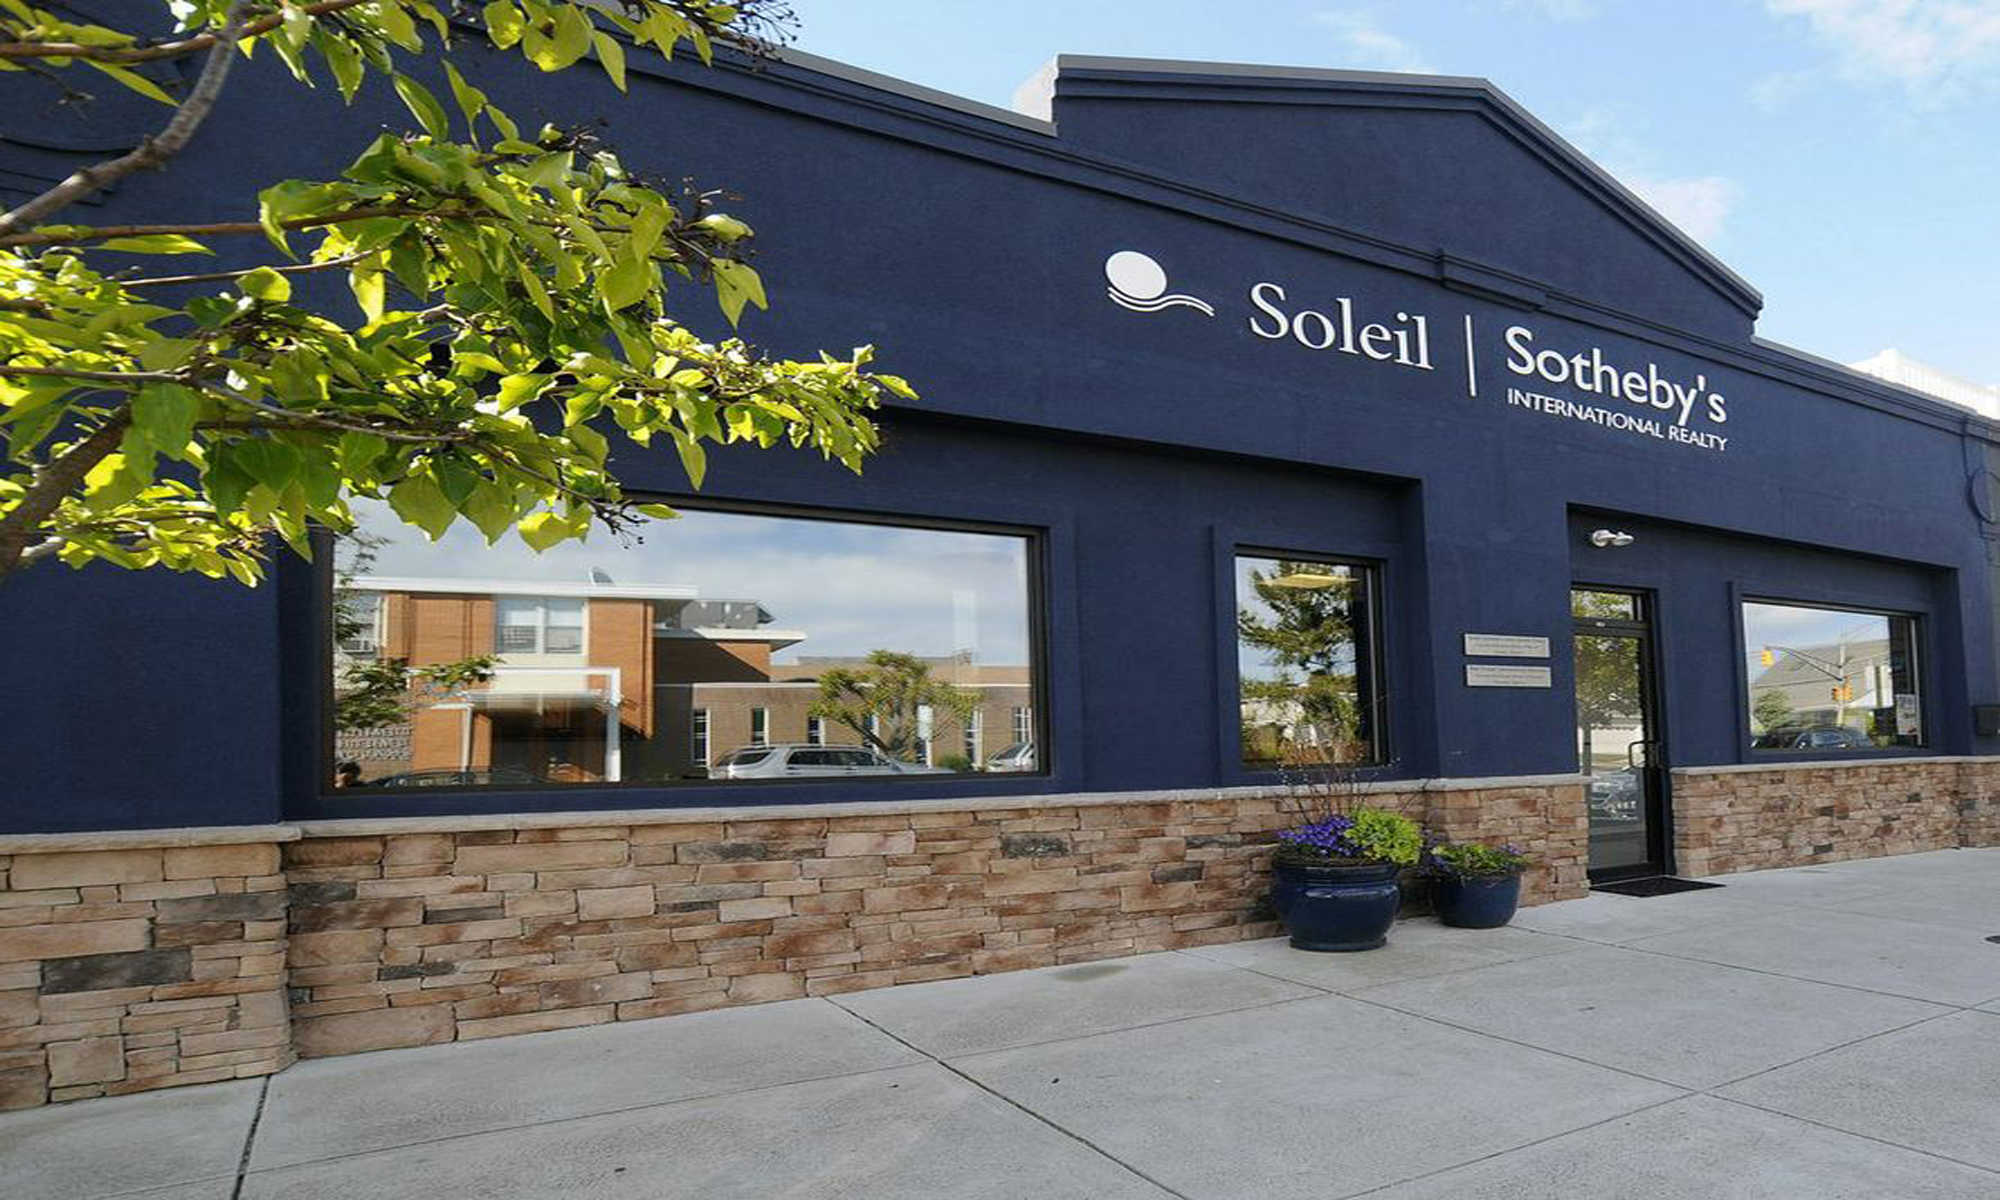 Soleil Sotheby's International Realty